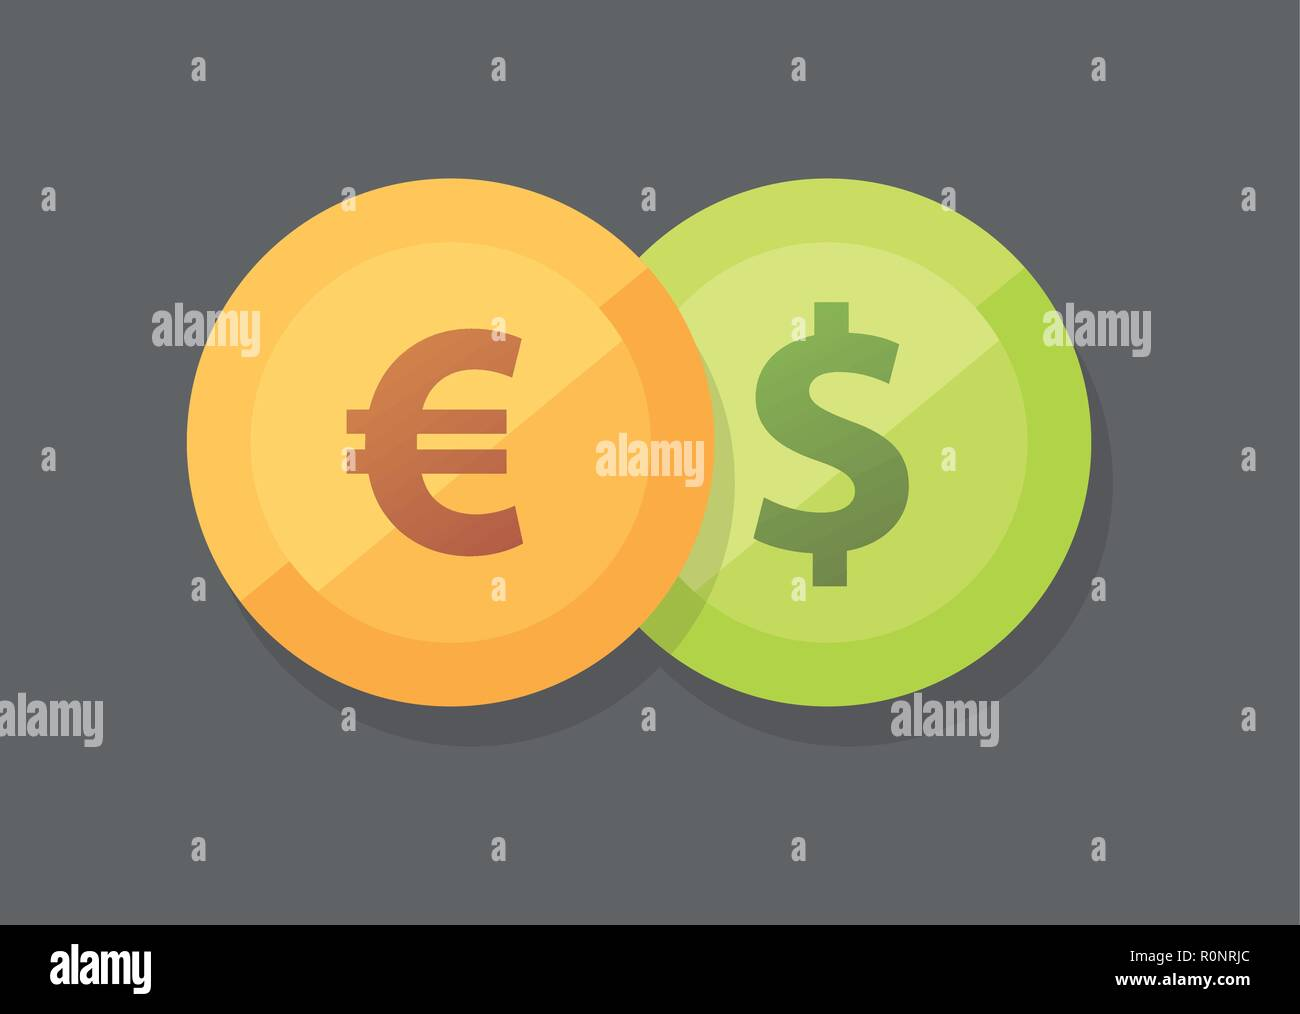 Currency pair of Euro vs Dollar vector icon on dark background - Stock Vector